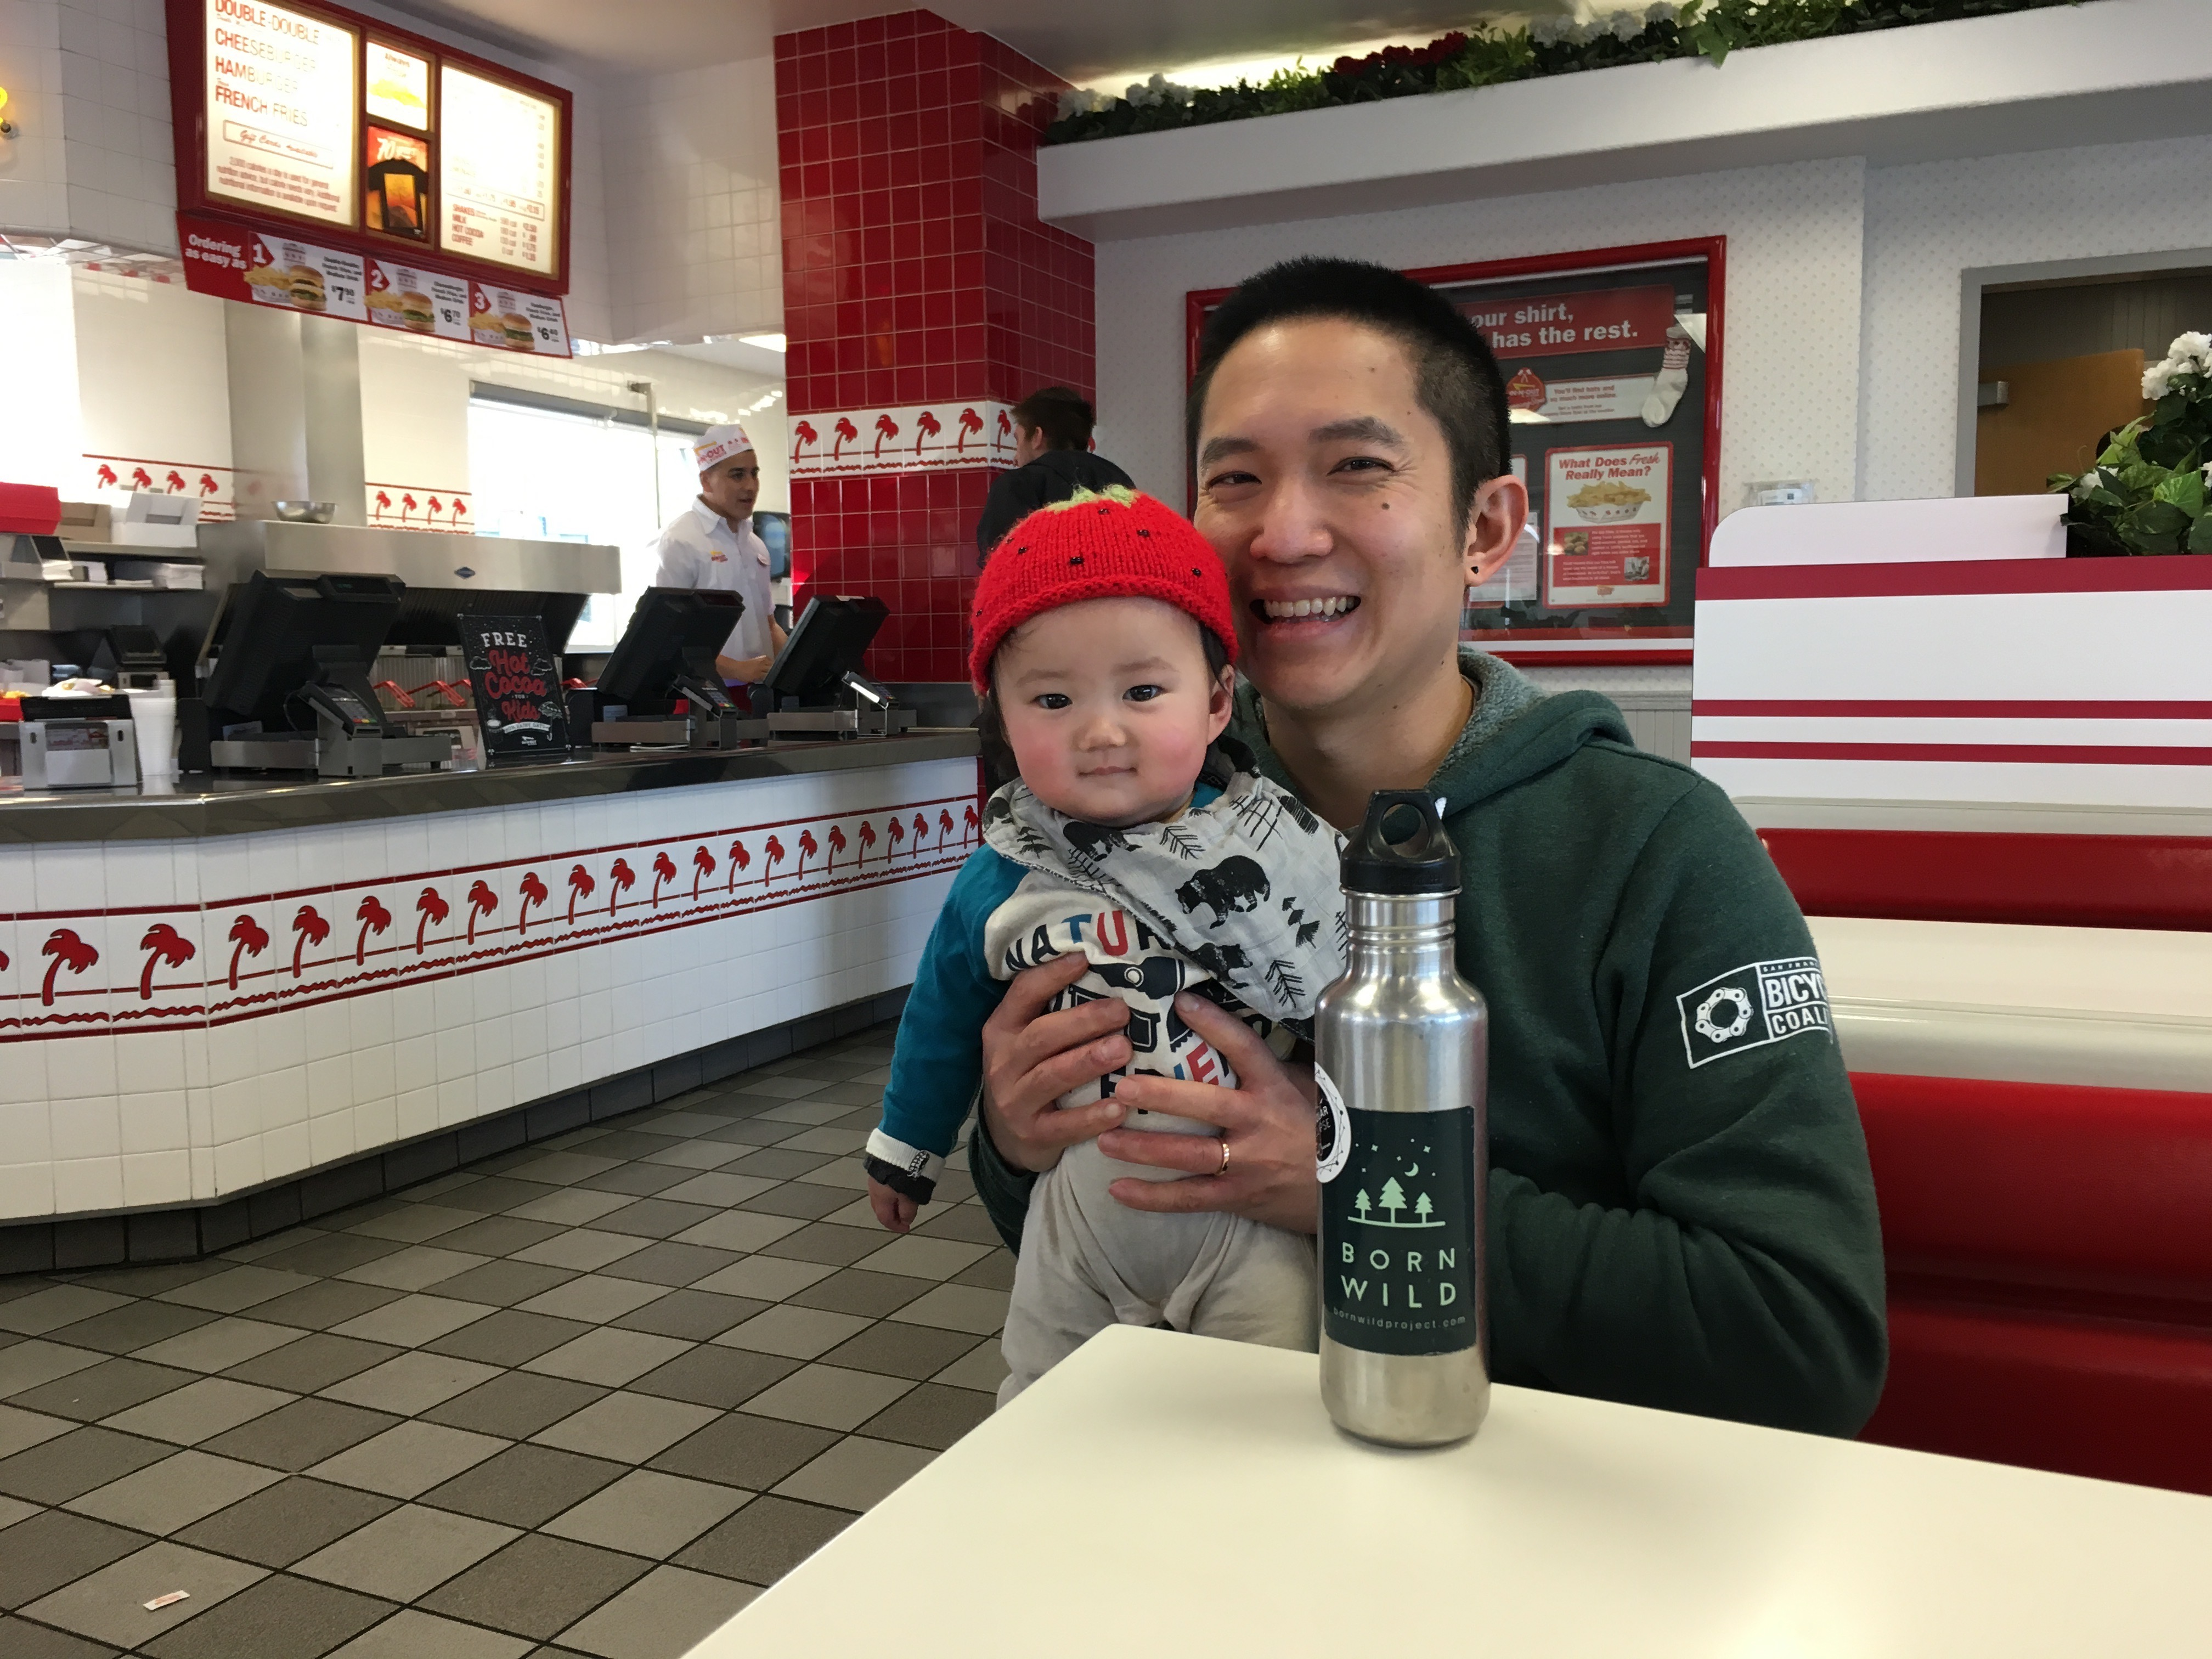 M and me at In-N-Out smiling